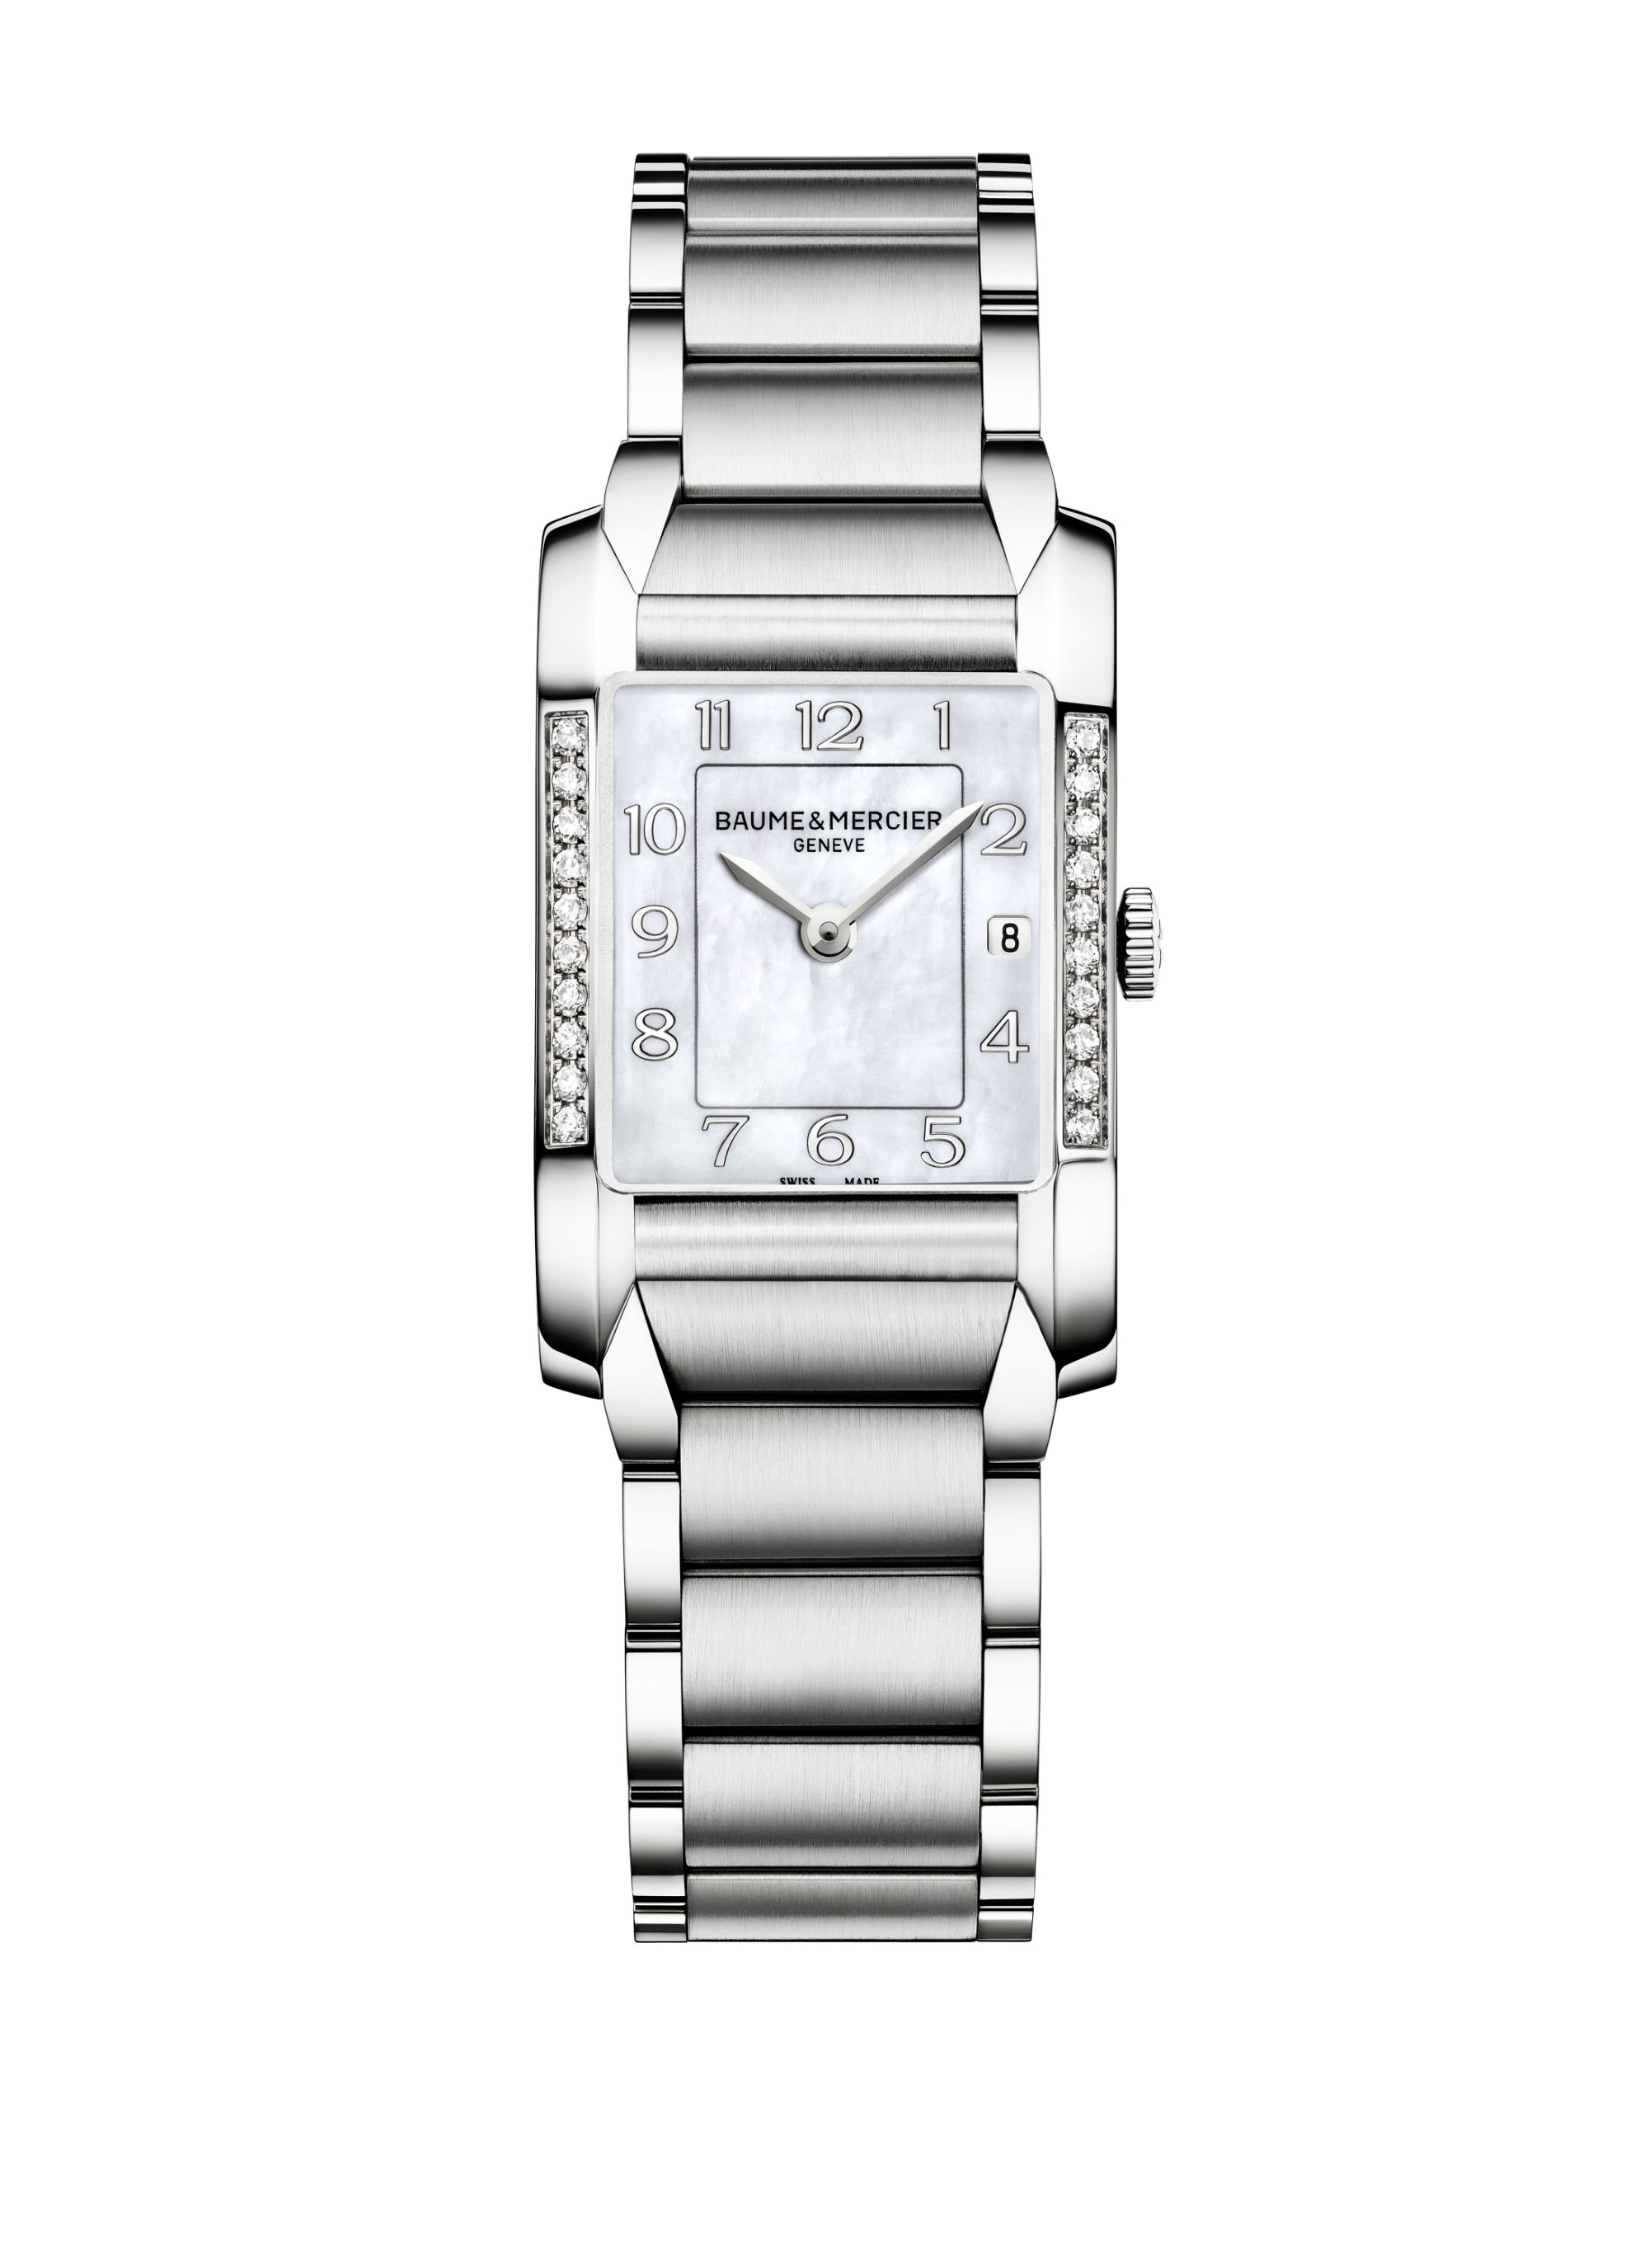 Hampton 10051 Watch for ladies | Check Prices on Baume & Mercier Front -